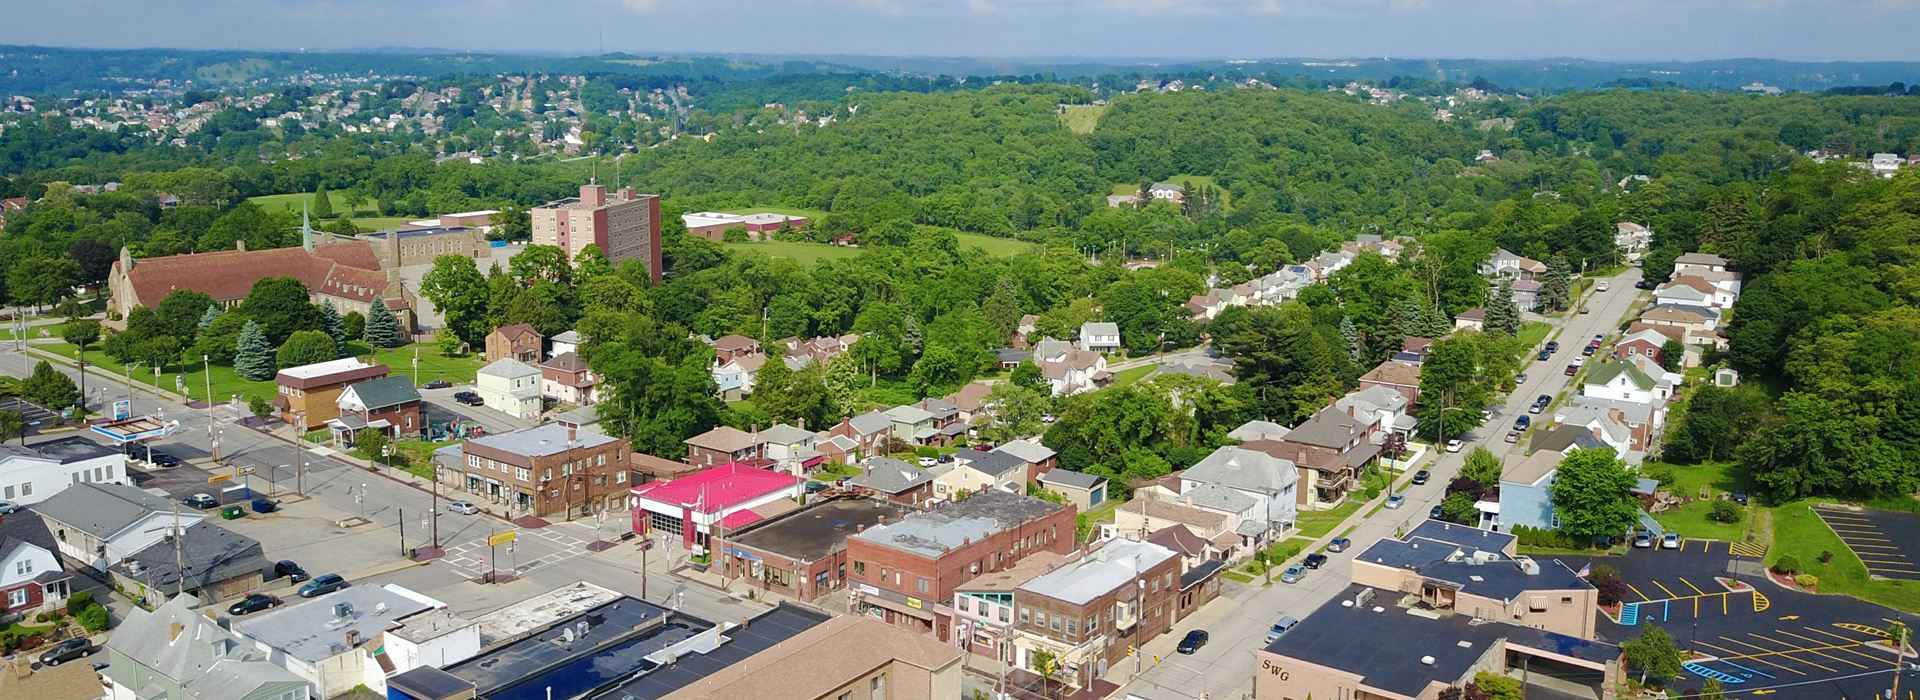 Munhall aerial photo | Jim Pigott Real Estate